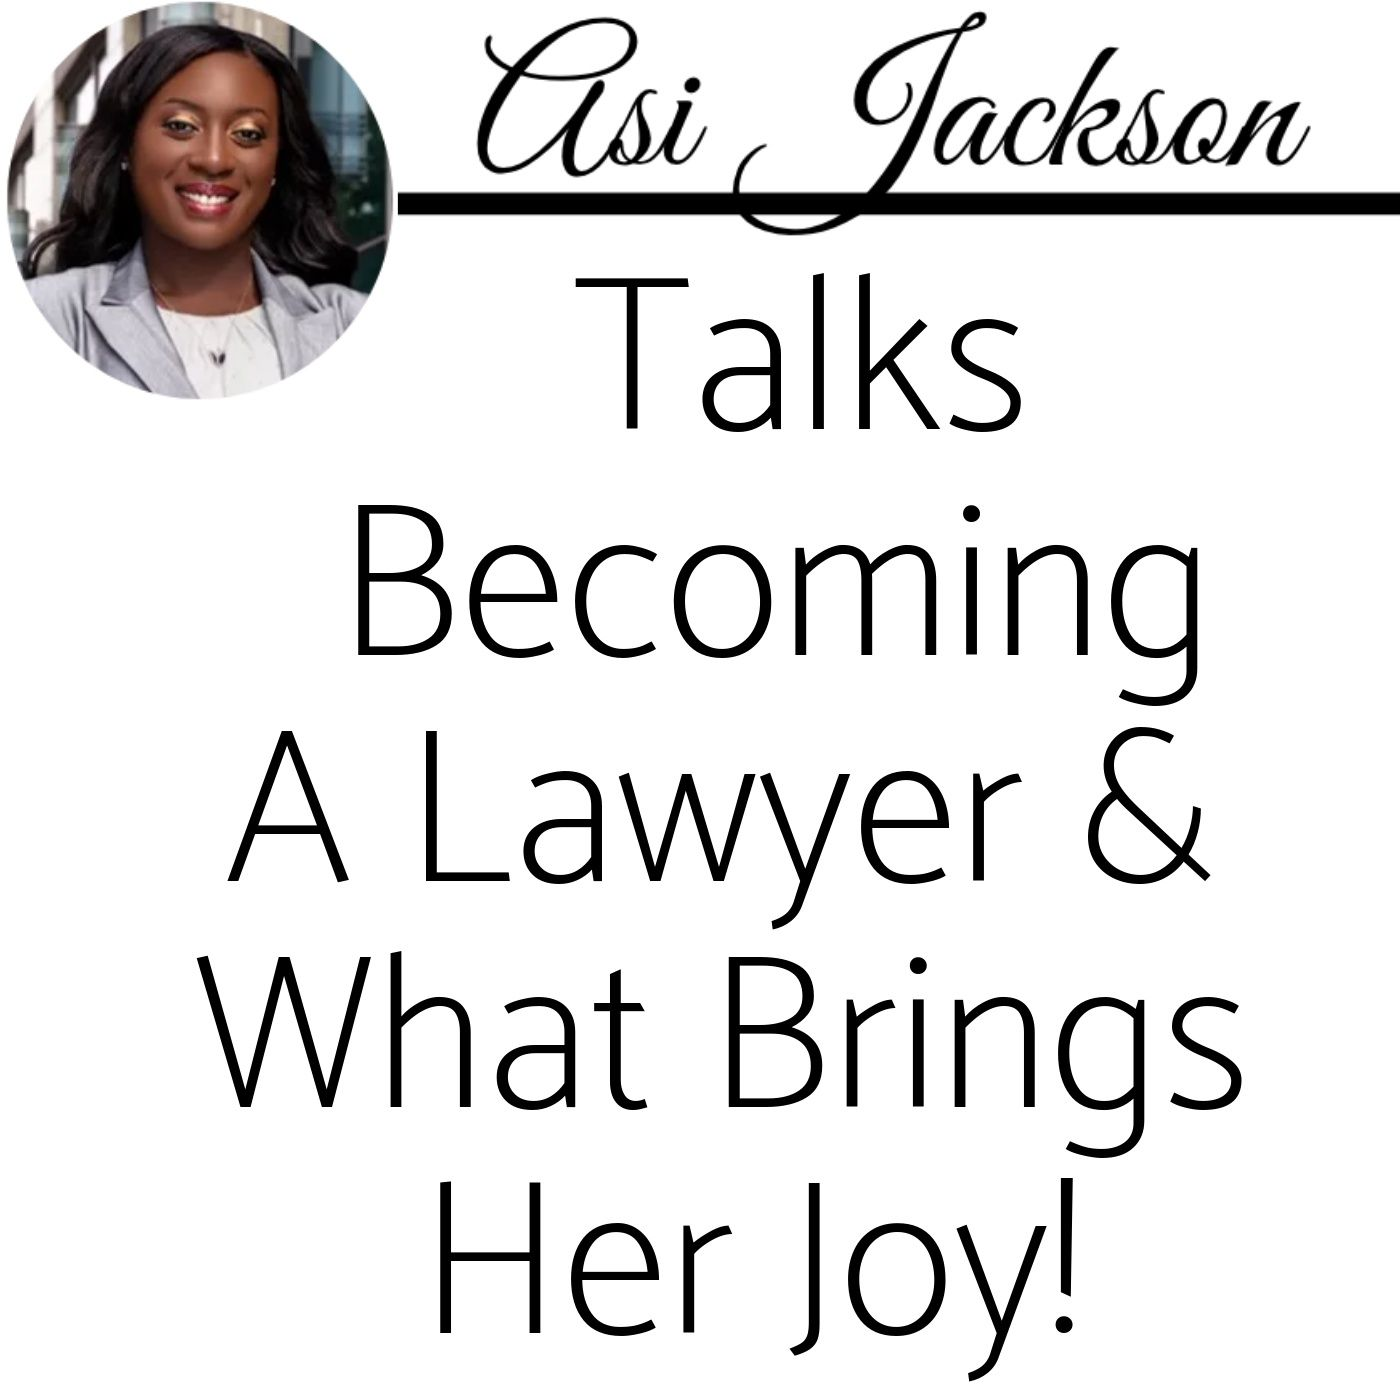 Part 1 of 3: Asi Jackson Talks Becoming a Lawyer & What Brings Her Joy!